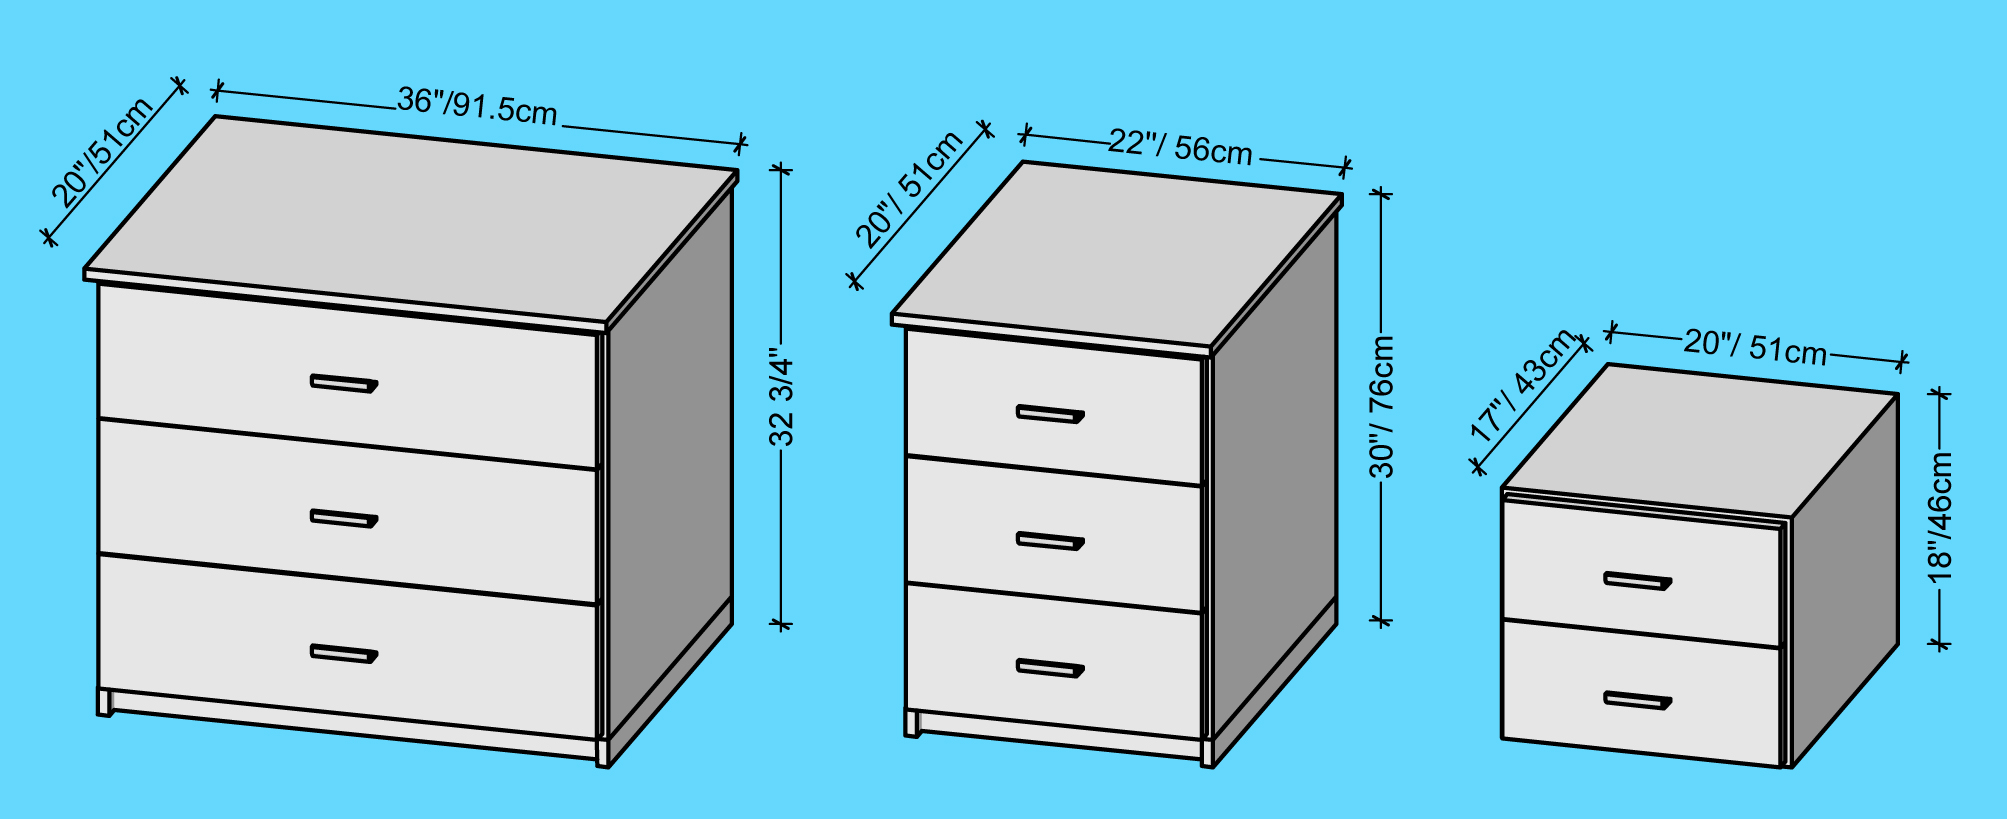 Bedside chest dimensions bedside chest measurements bedside chest